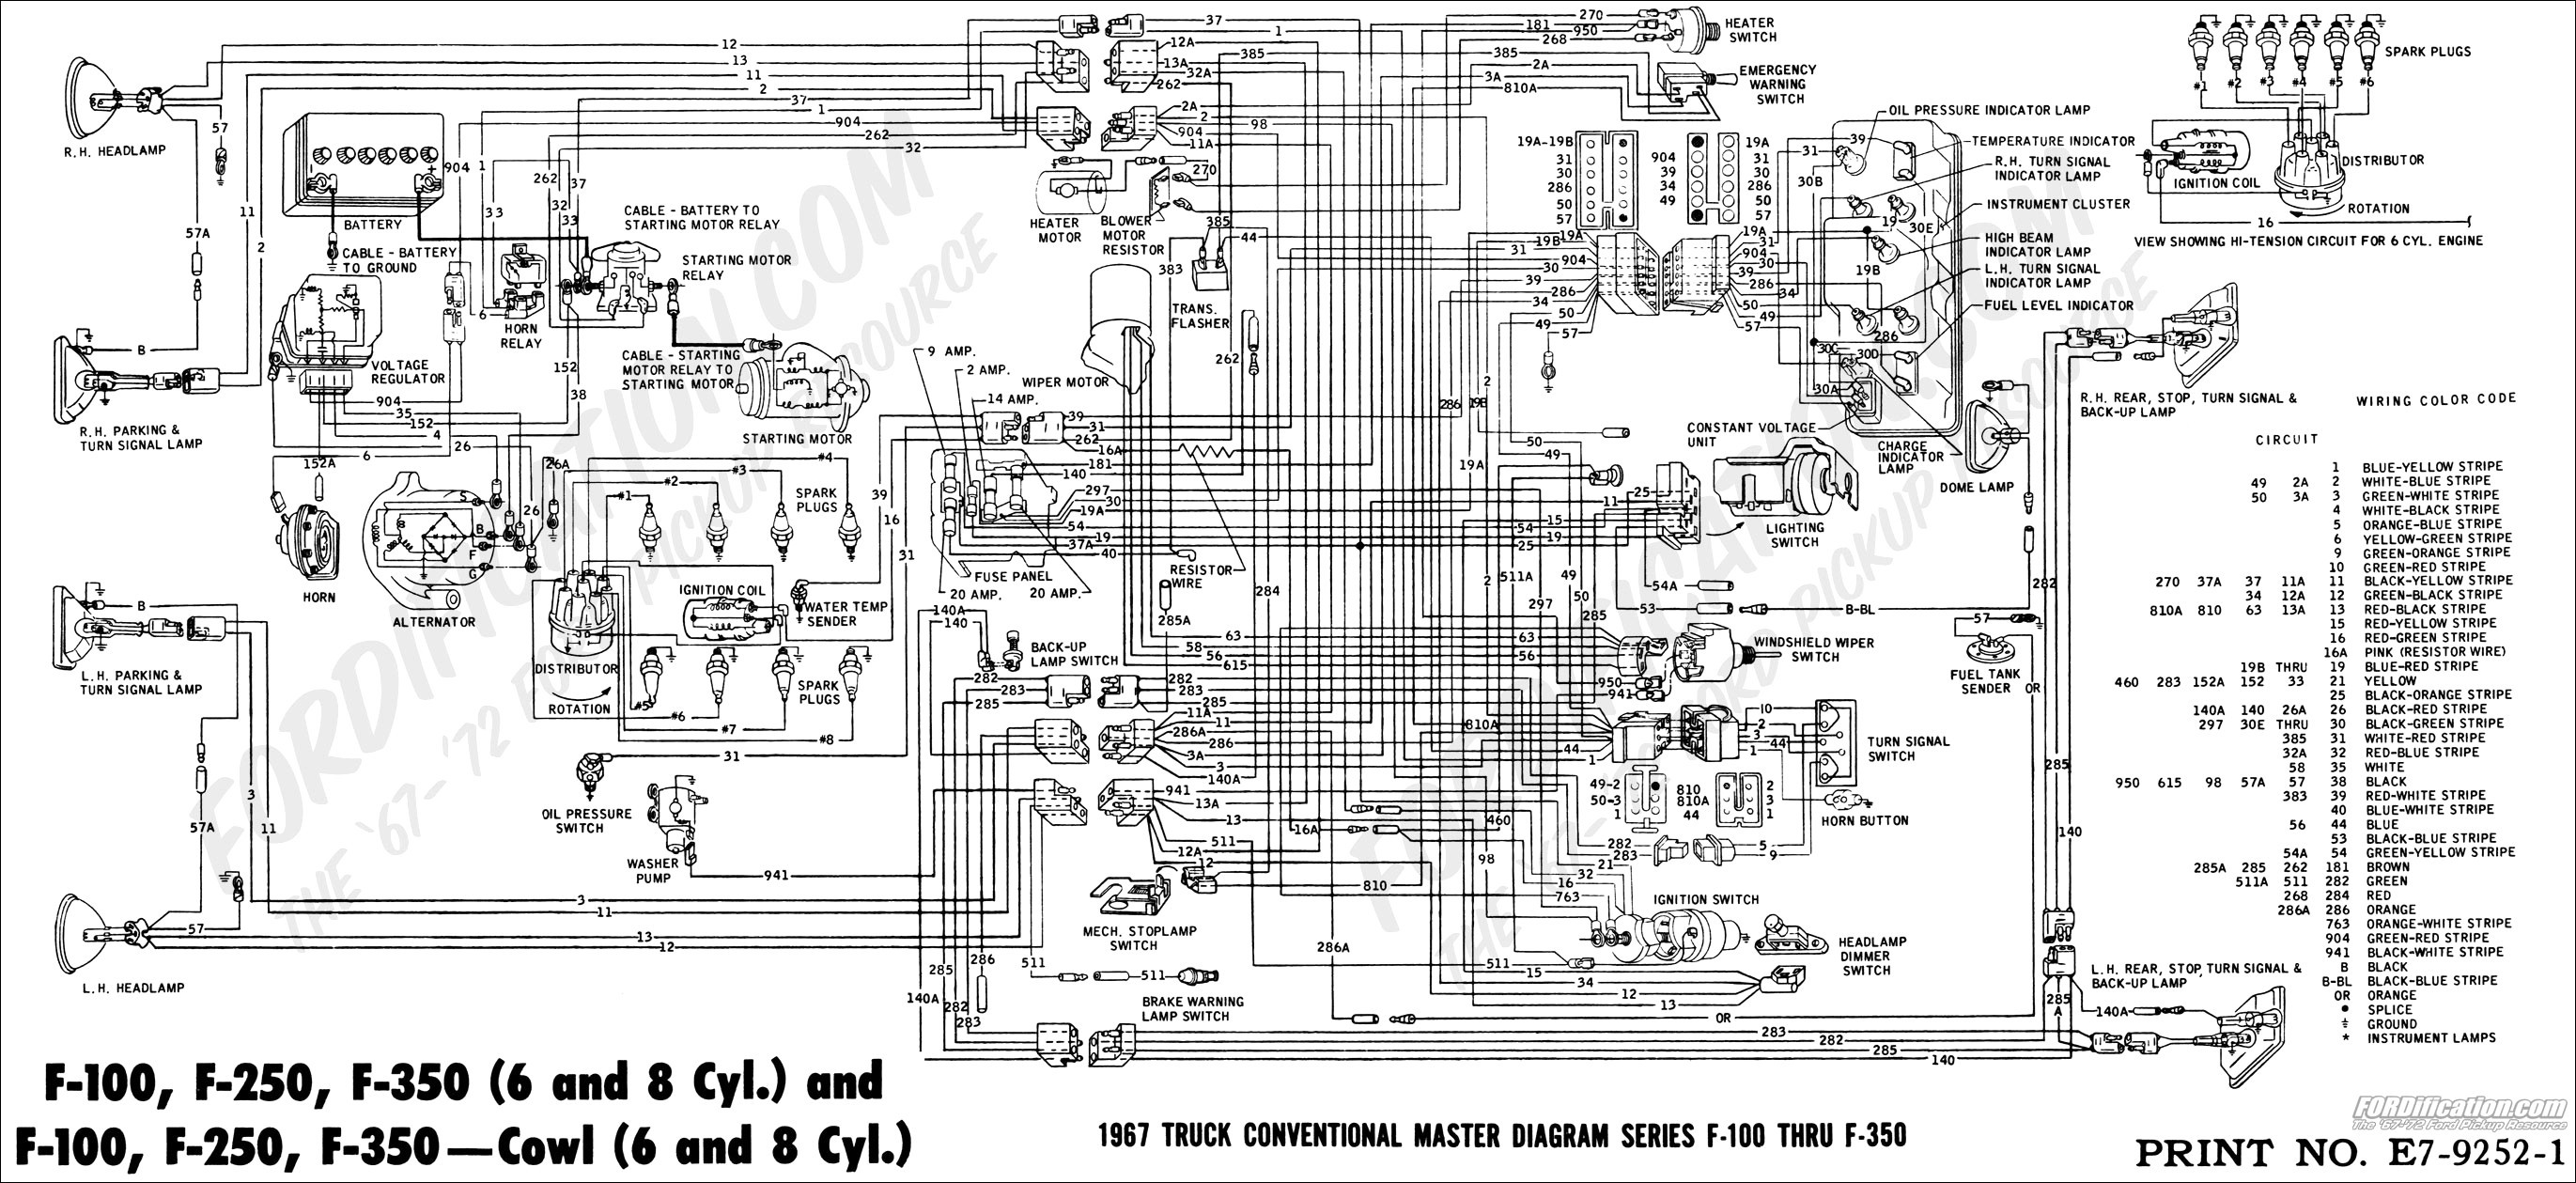 2001 ford 5 4 engine diagram smart wiring diagrams u2022 rh emgsolutions co 2004  Ford F 150 Wiring Schematic Cmcv Ford F-150 Wire Diagrams Diagrams